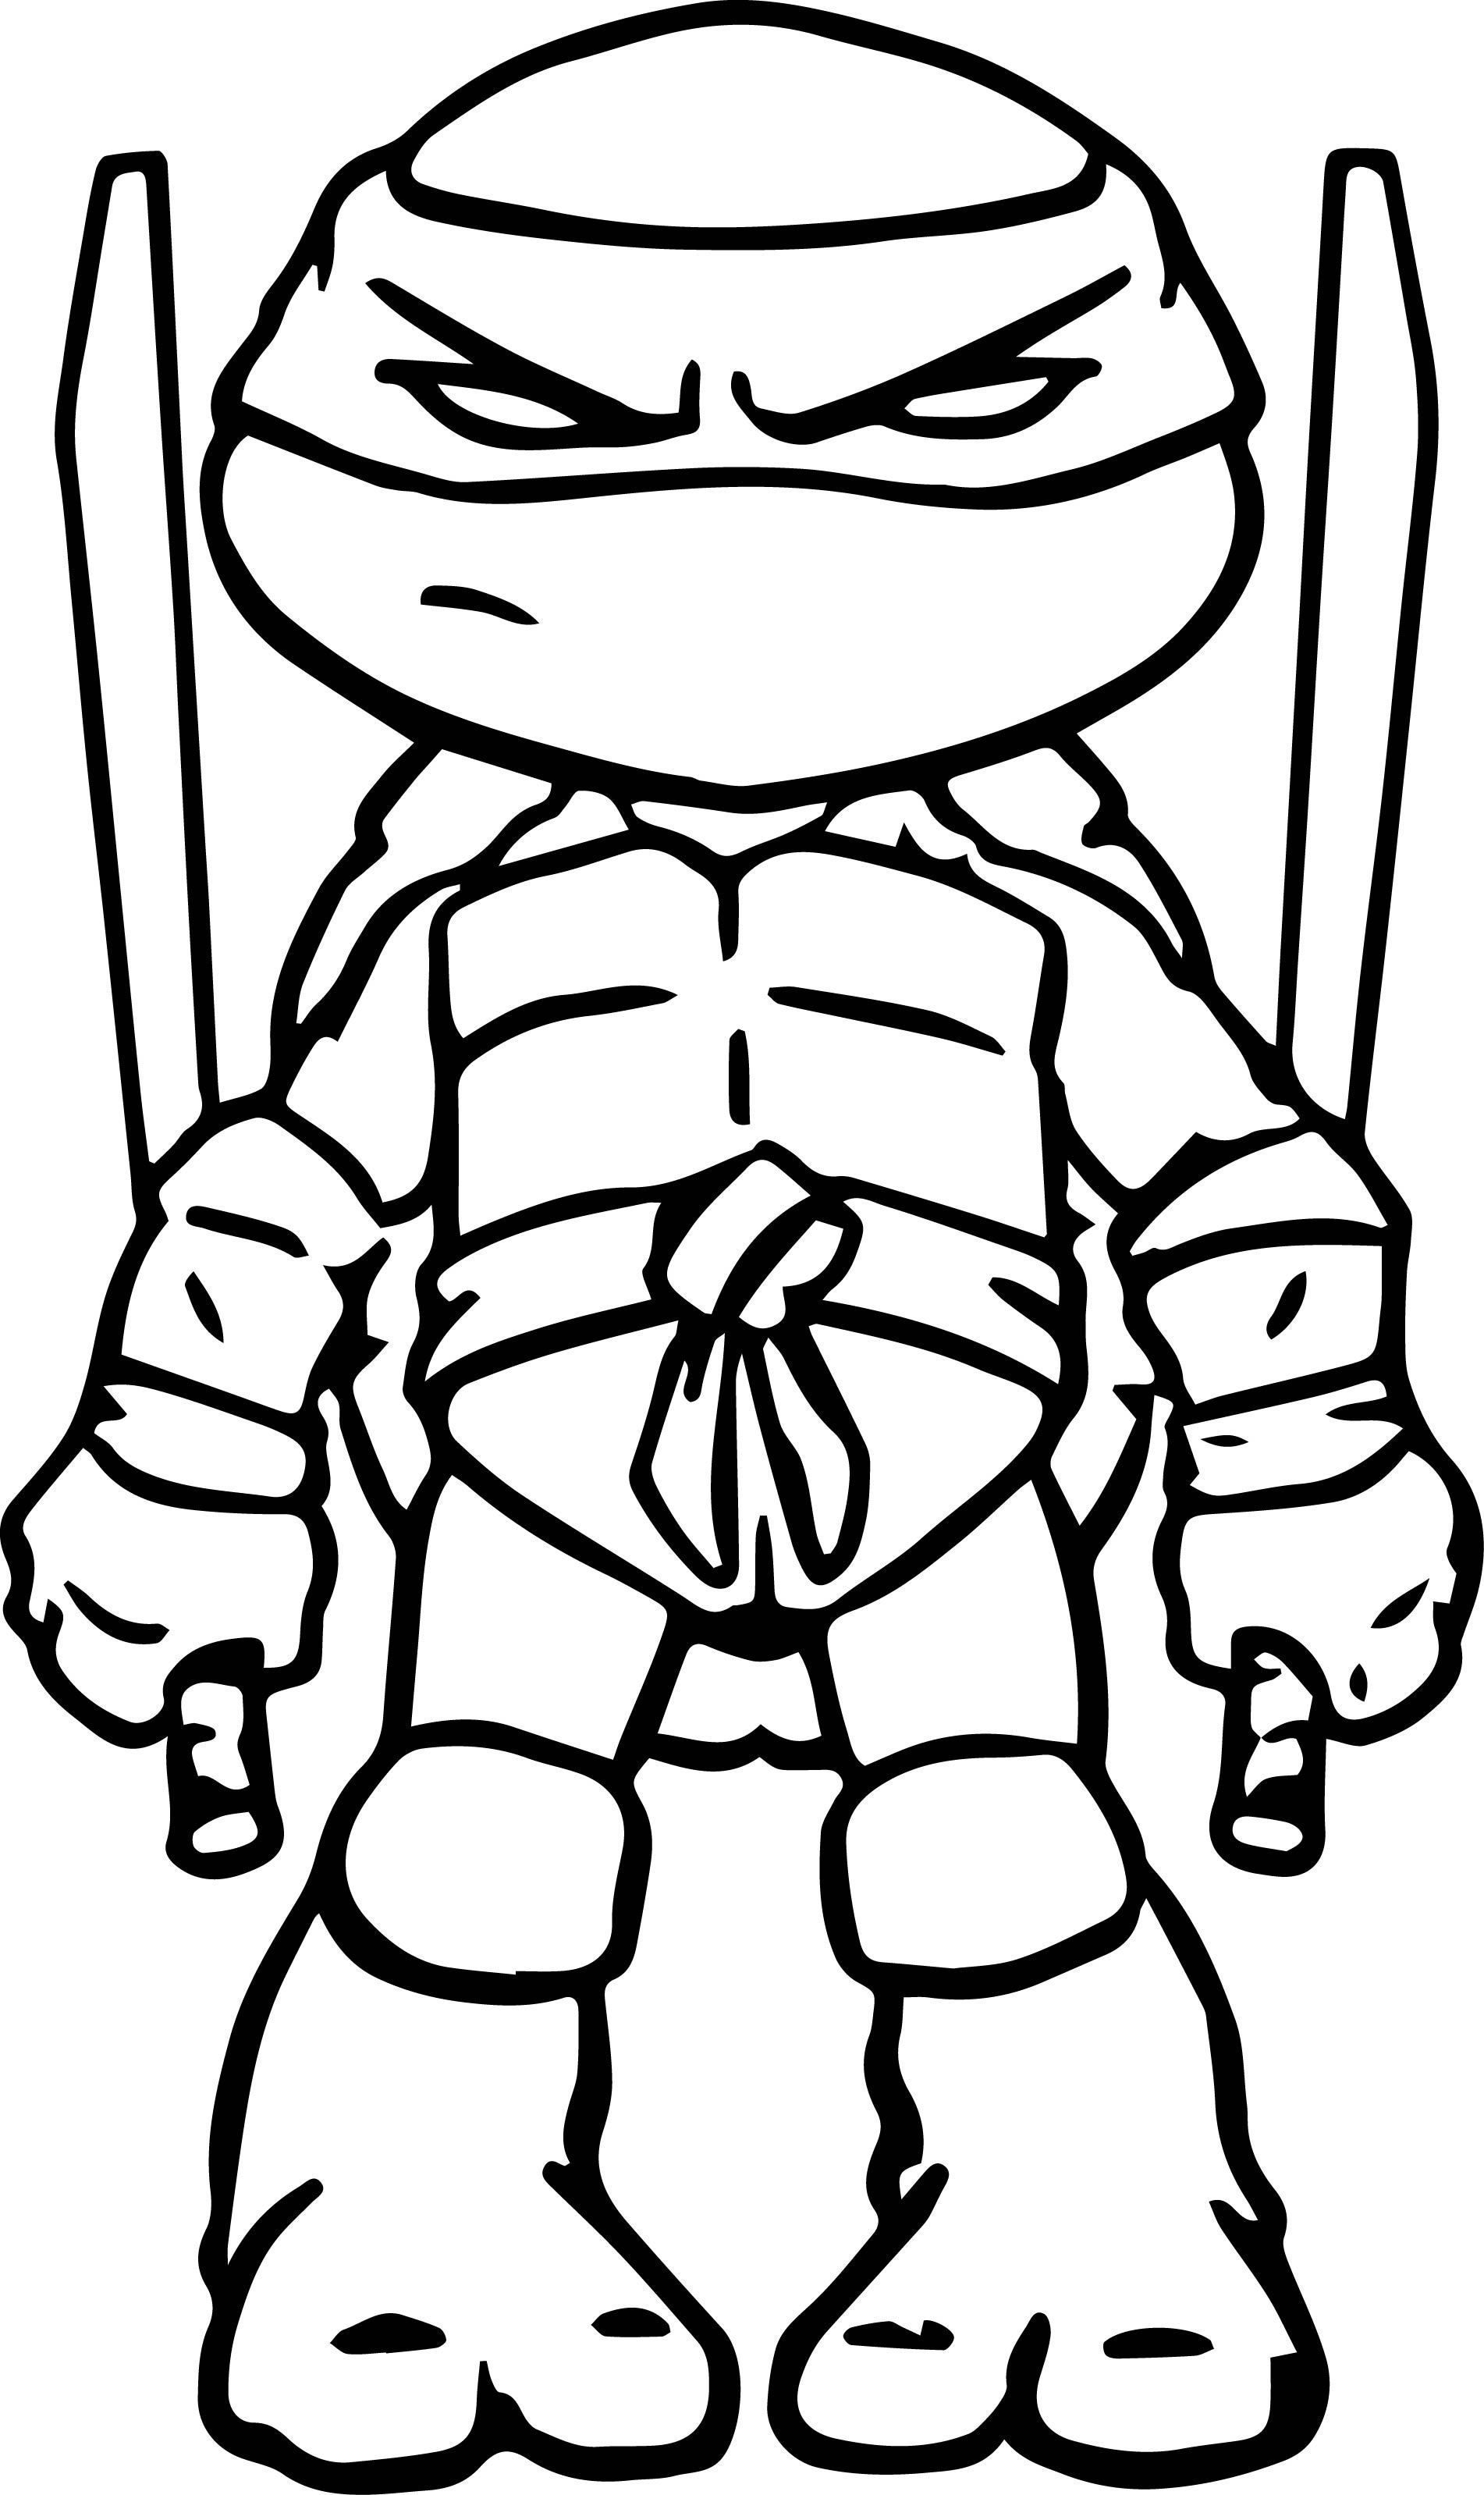 Perfect-Cute-Ninja-Turtles-Coloring-Pages-Turtle-Coloring-Sheets ...